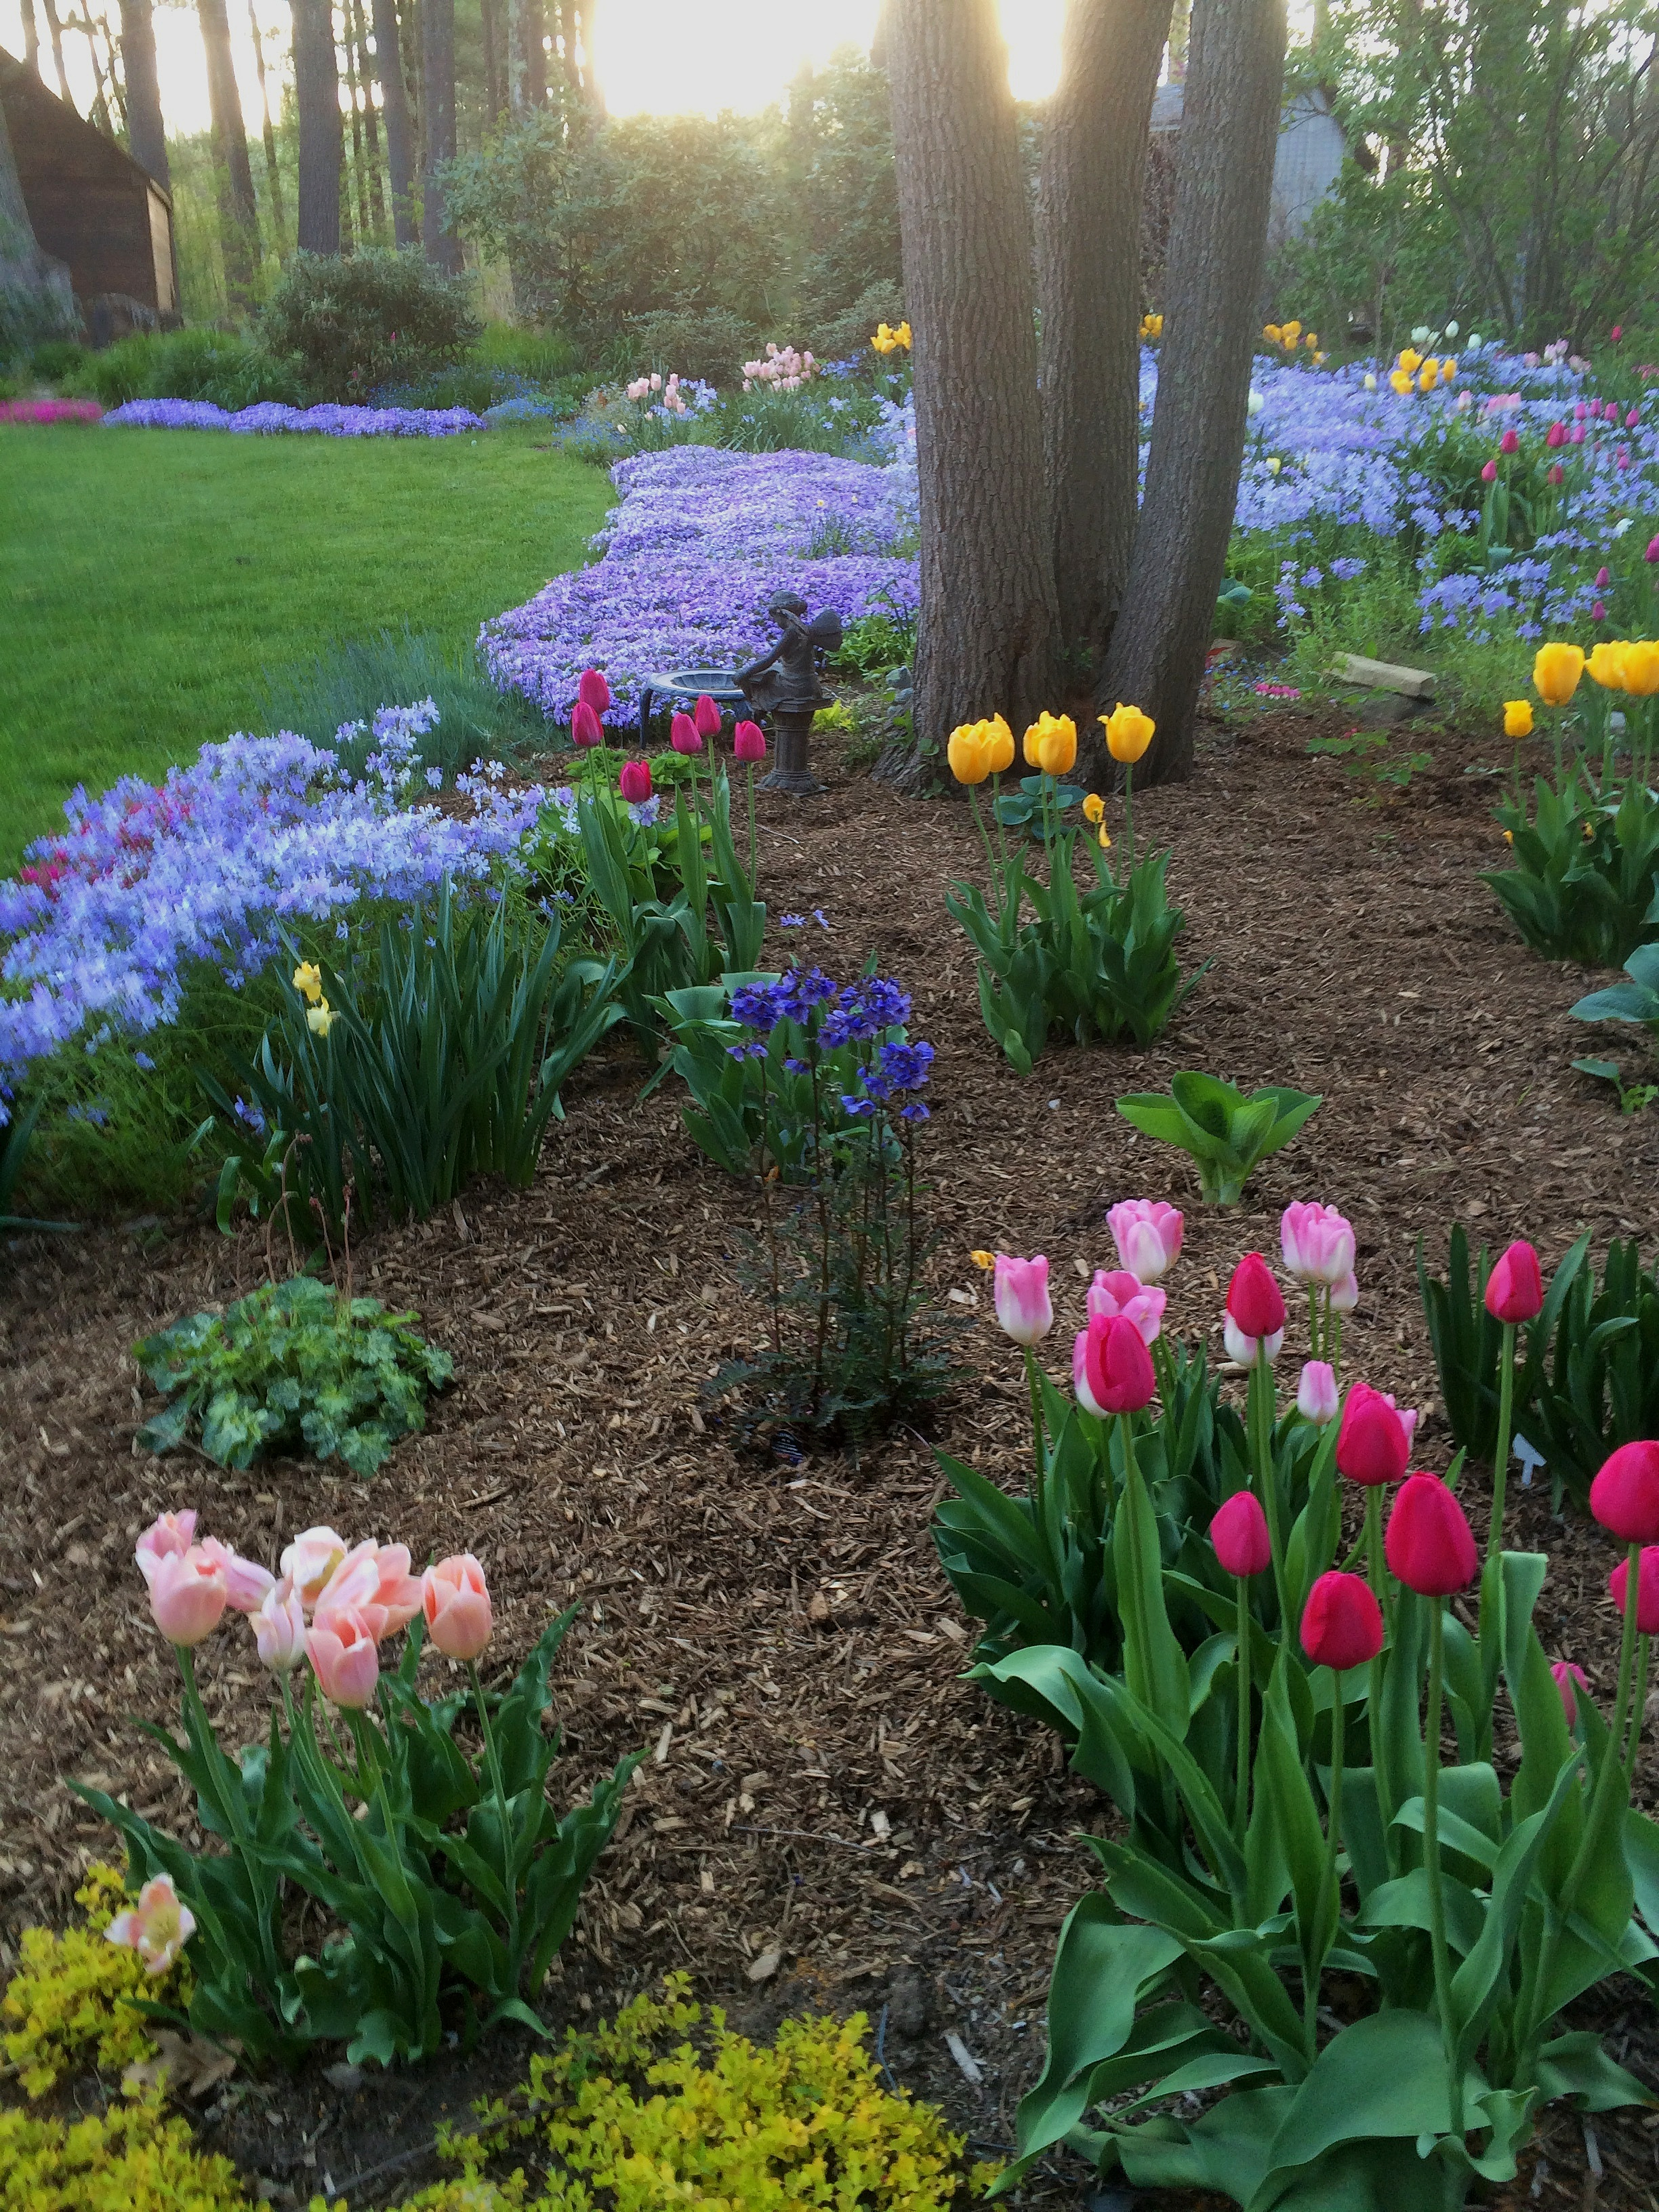 Make your yard simply elegant with vibrant tulips, crocus, and hyacinths.